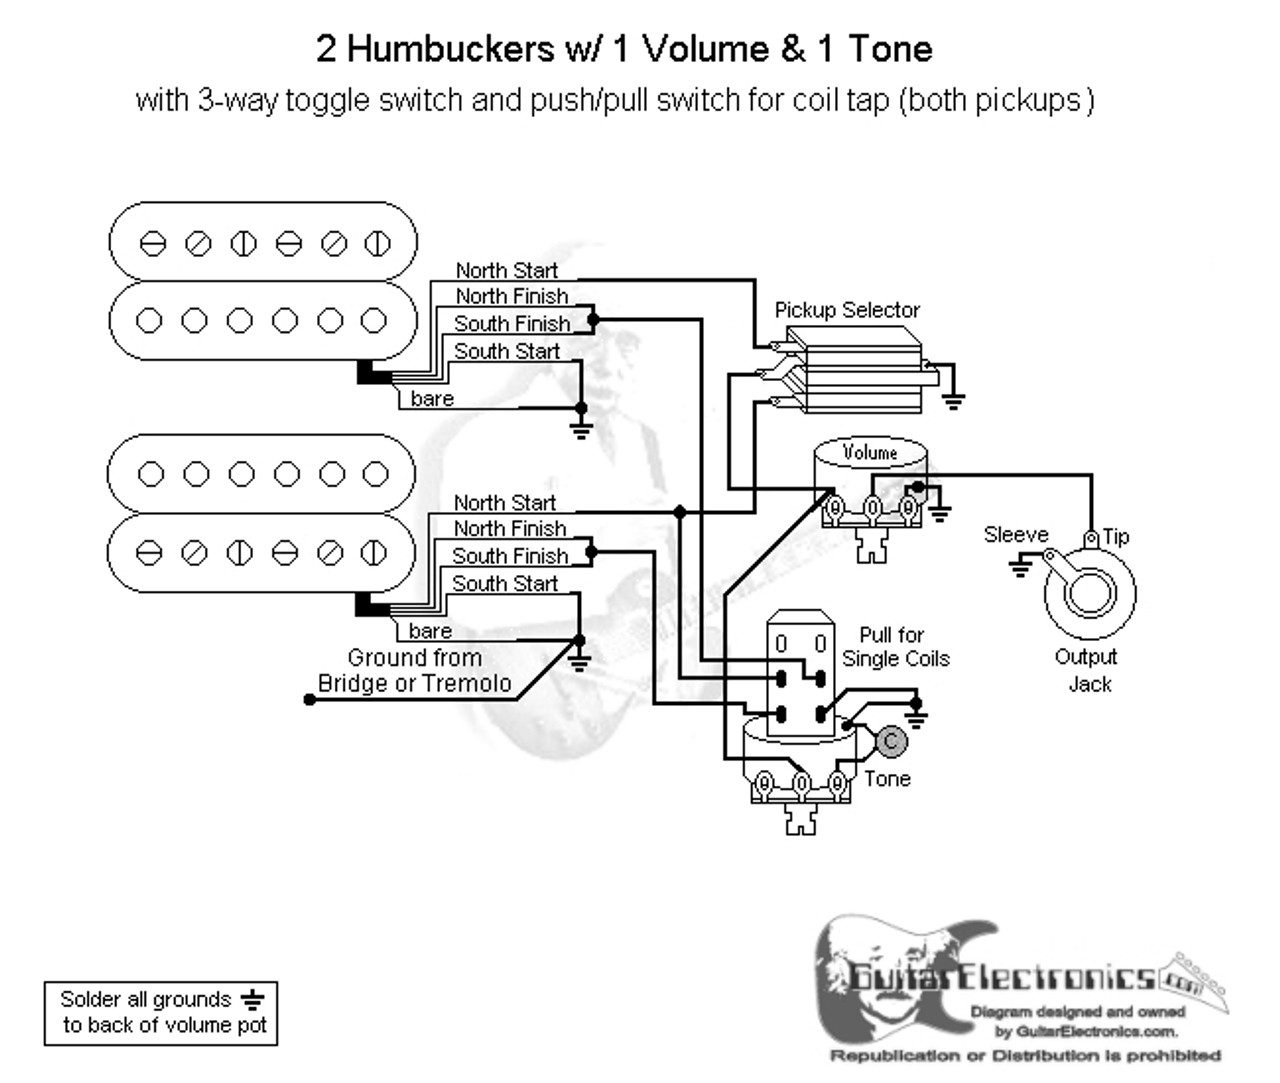 hight resolution of 2 humbuckers 3 way toggle switch 1 volume 1 tone coil tap1 single coil pickup wiring